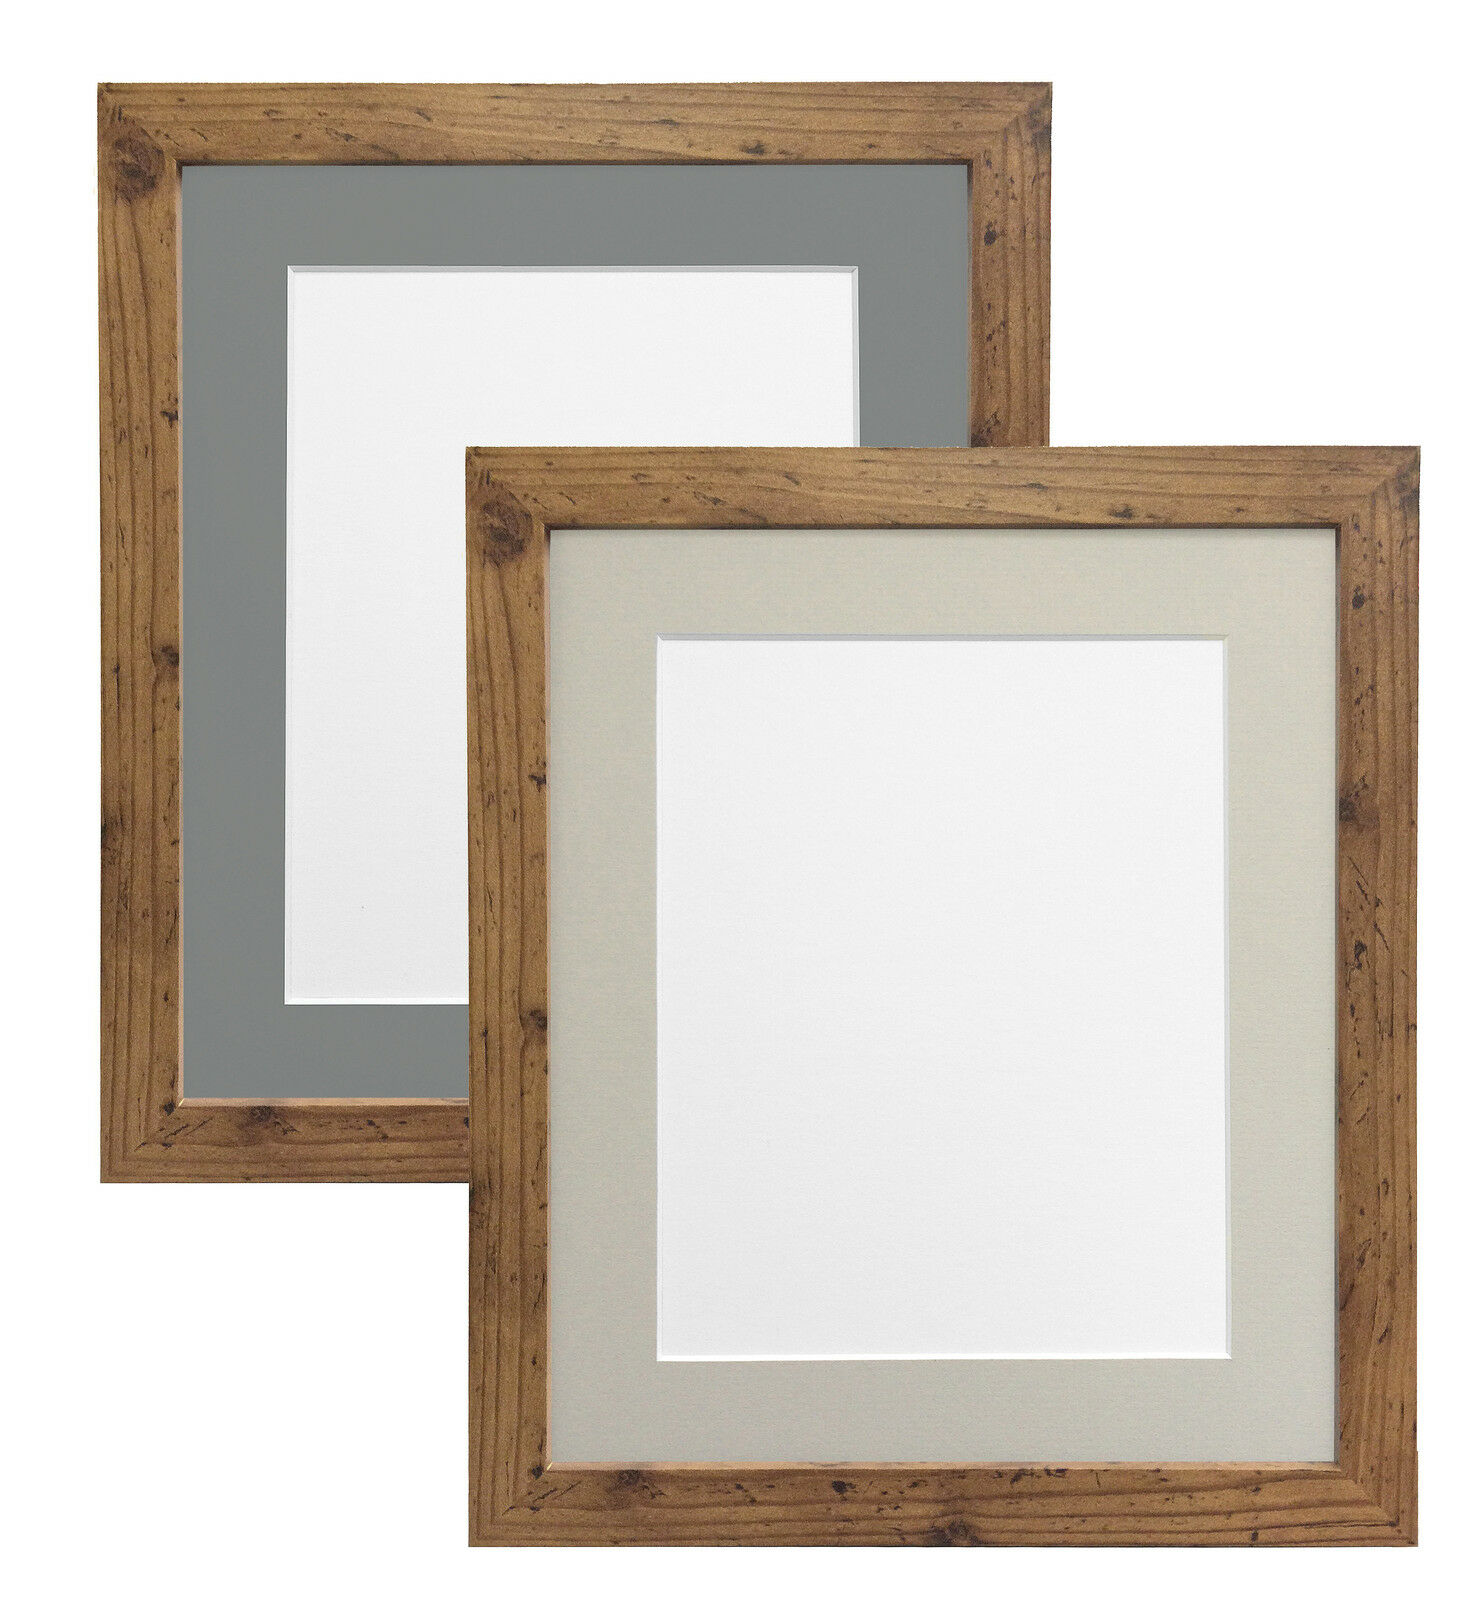 Rustic Oak Photo Picture Frames with Light or Dark Grey Mounts multiple Sizes H7